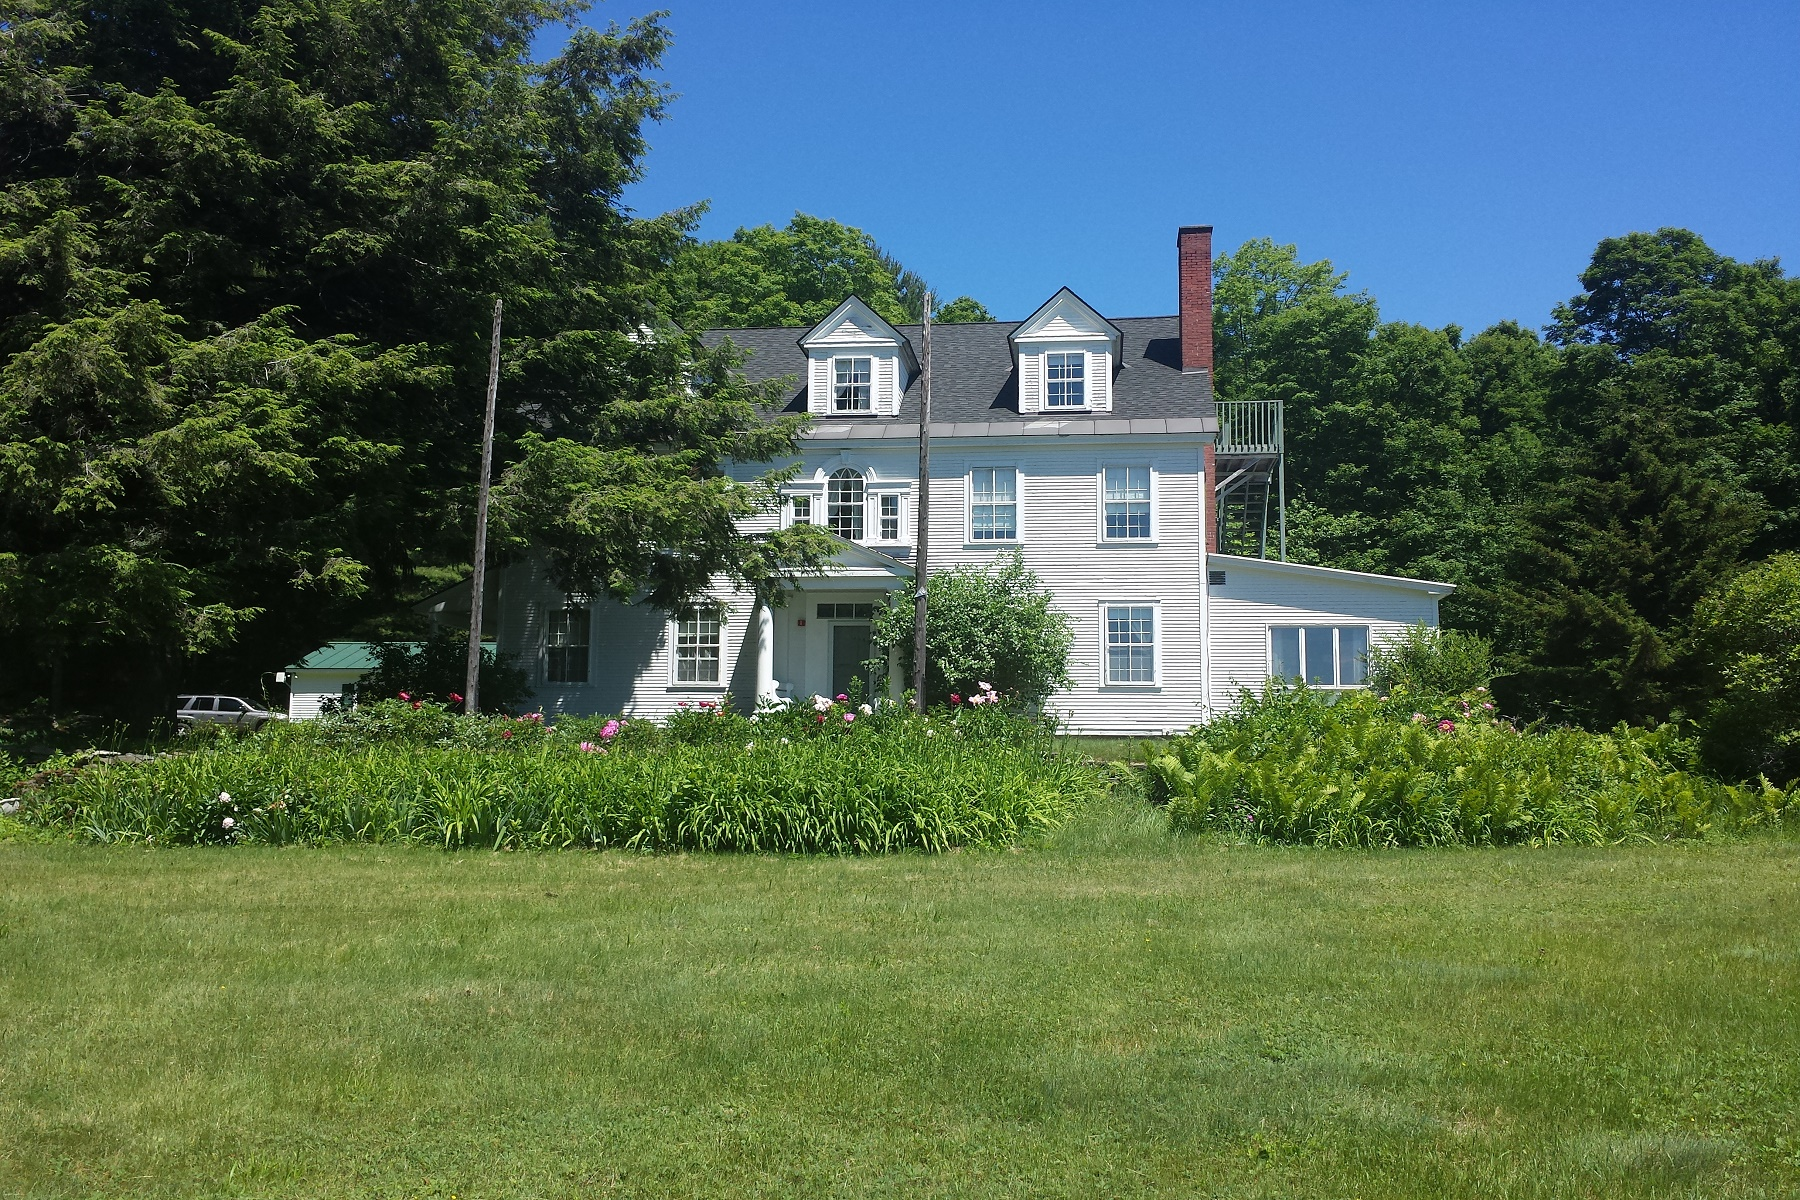 Single Family Home for Sale at 1646 Gove Hill Road, Thetford 1646 Gove Hill Rd, Thetford, Vermont, 05024 United States